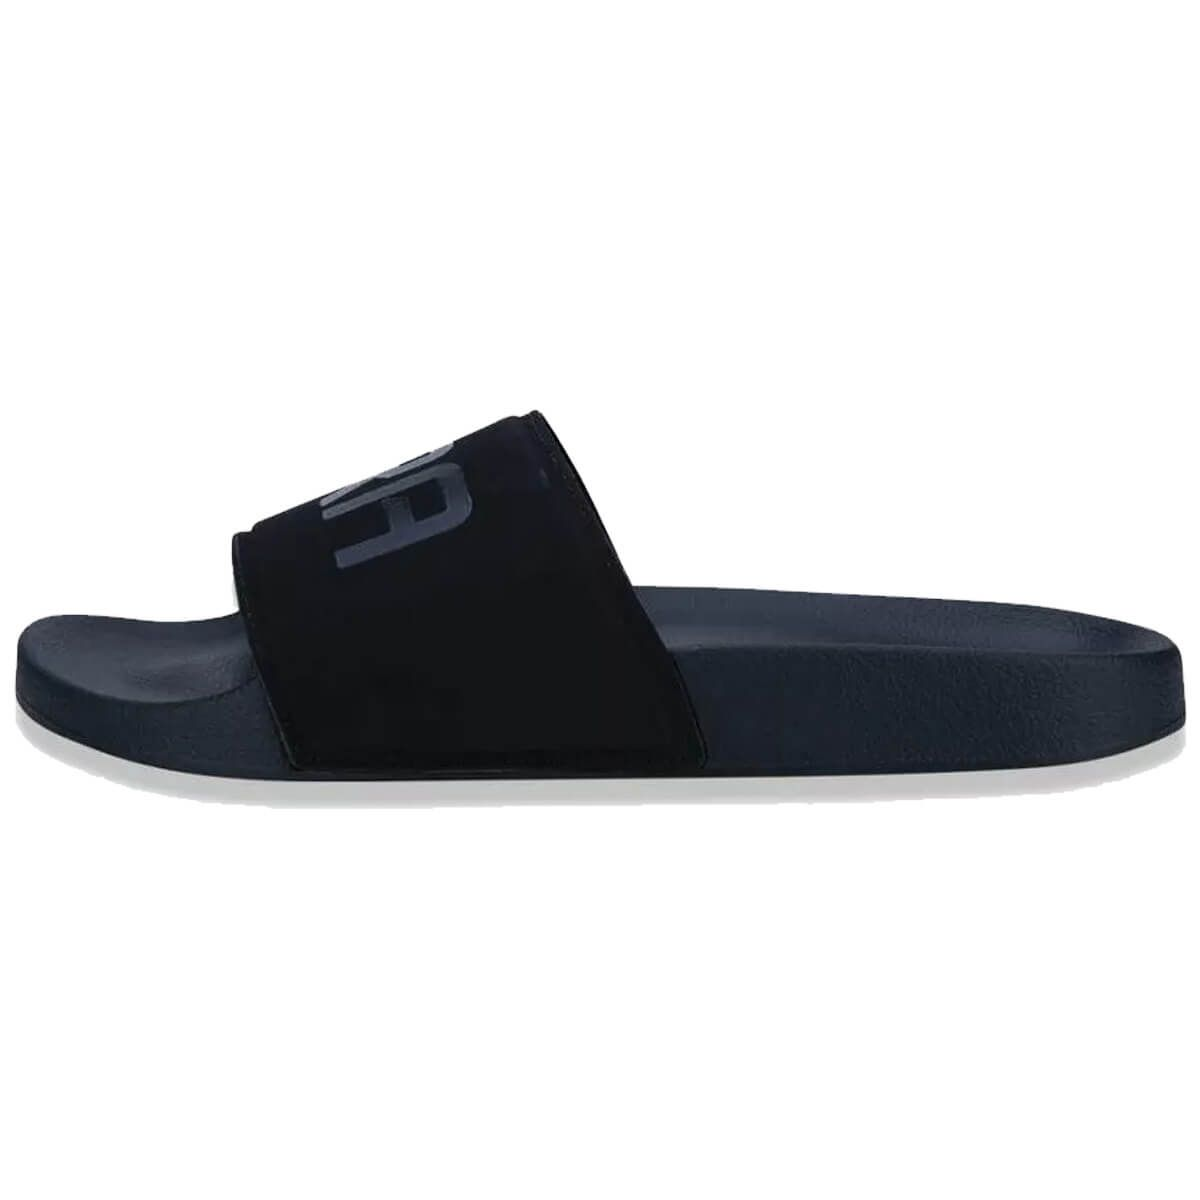 Chinelo New Era Slide Tipia Brand Flag Colors Preto